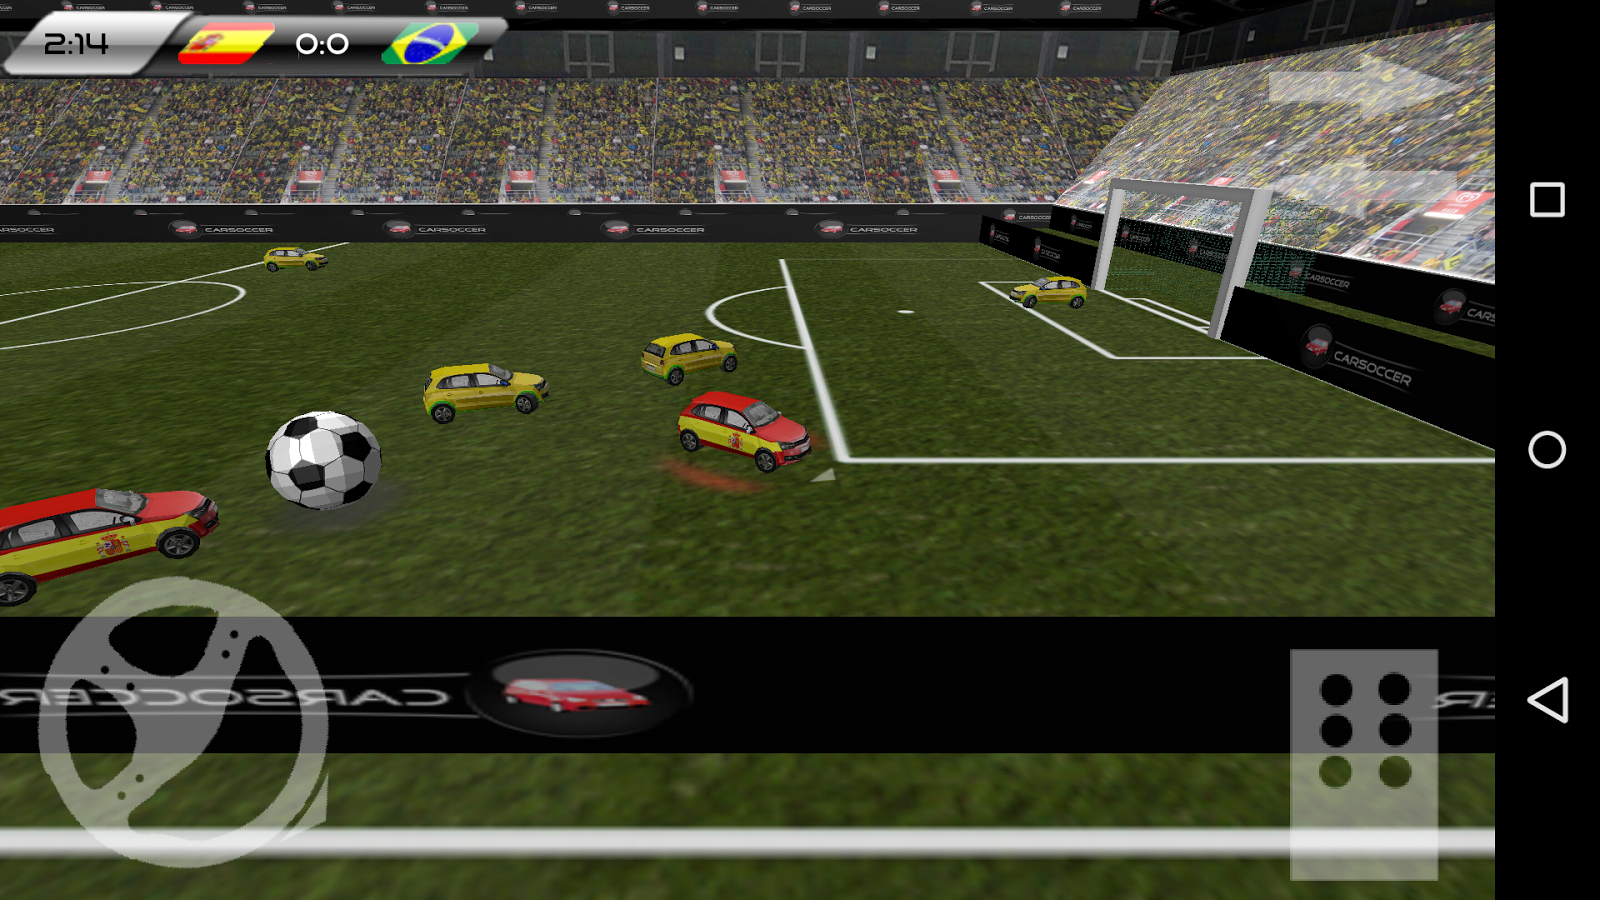 The Car Soccer Game